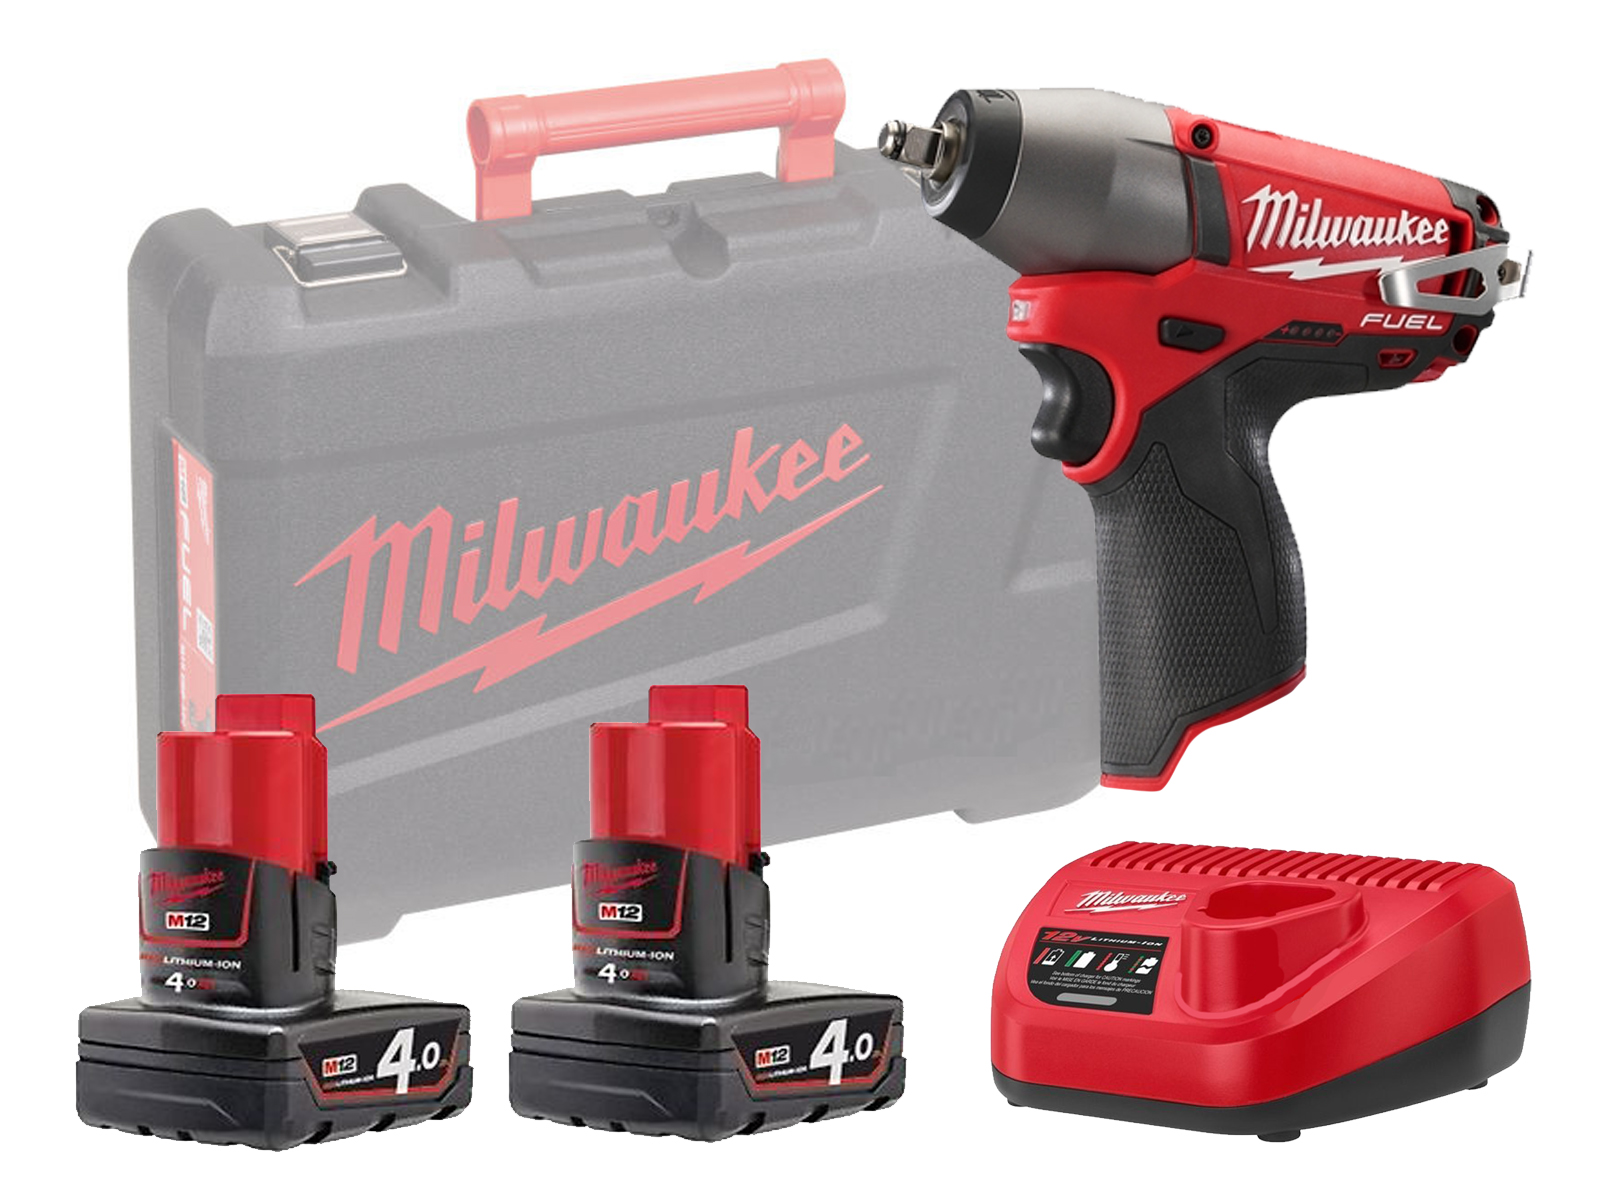 "MILWAUKEE 12V FUEL BRUSHLESS IMPACT WRENCH 1/2"" - M12CIW12 - 6.0AH PACK"